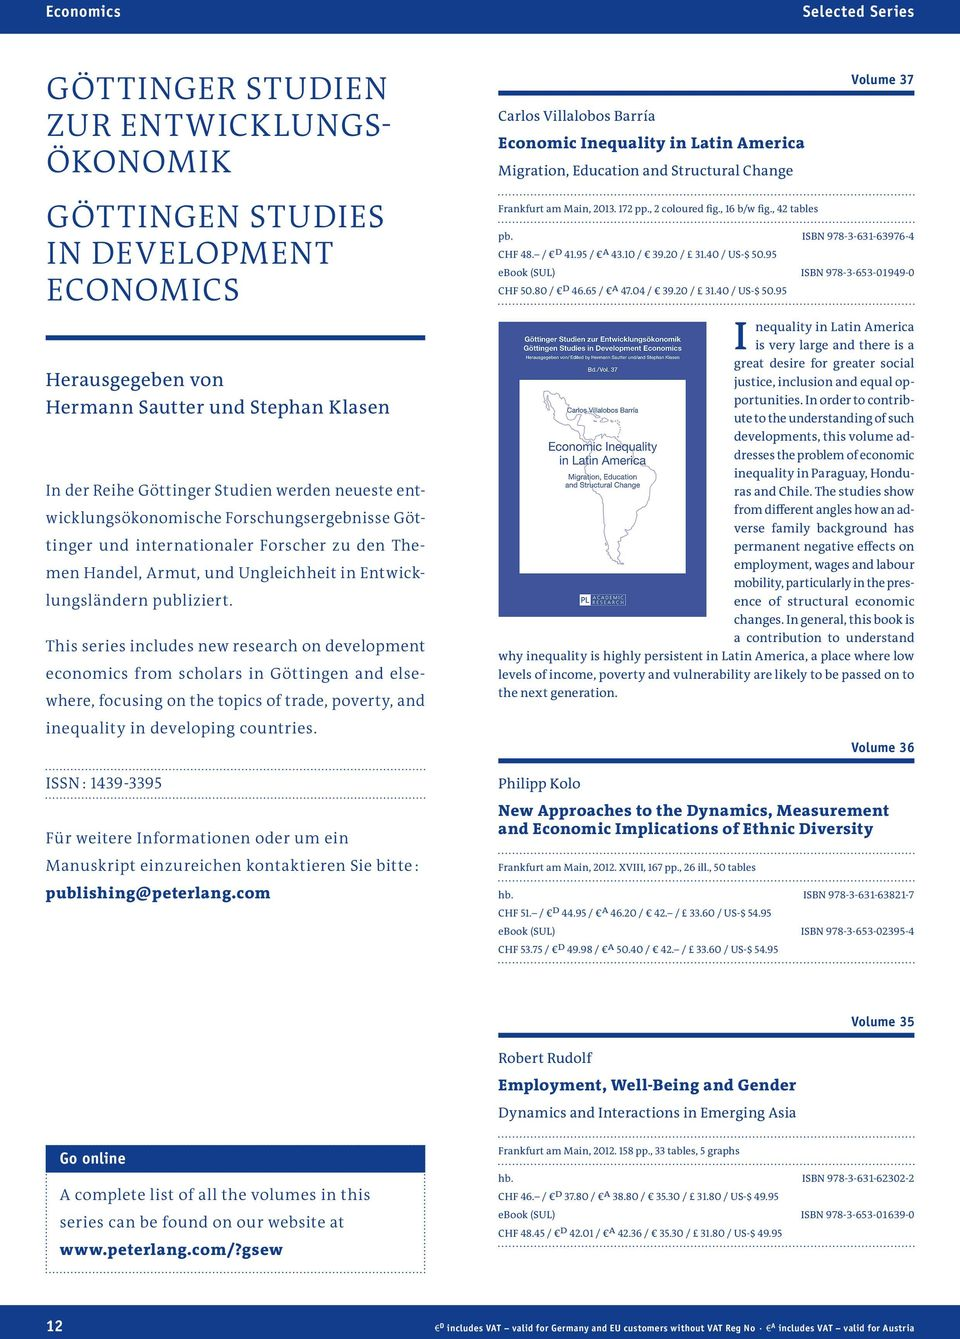 This series includes new research on development economics from scholars in Göttingen and elsewhere, focusing on the topics of trade, poverty, and inequality in developing countries.